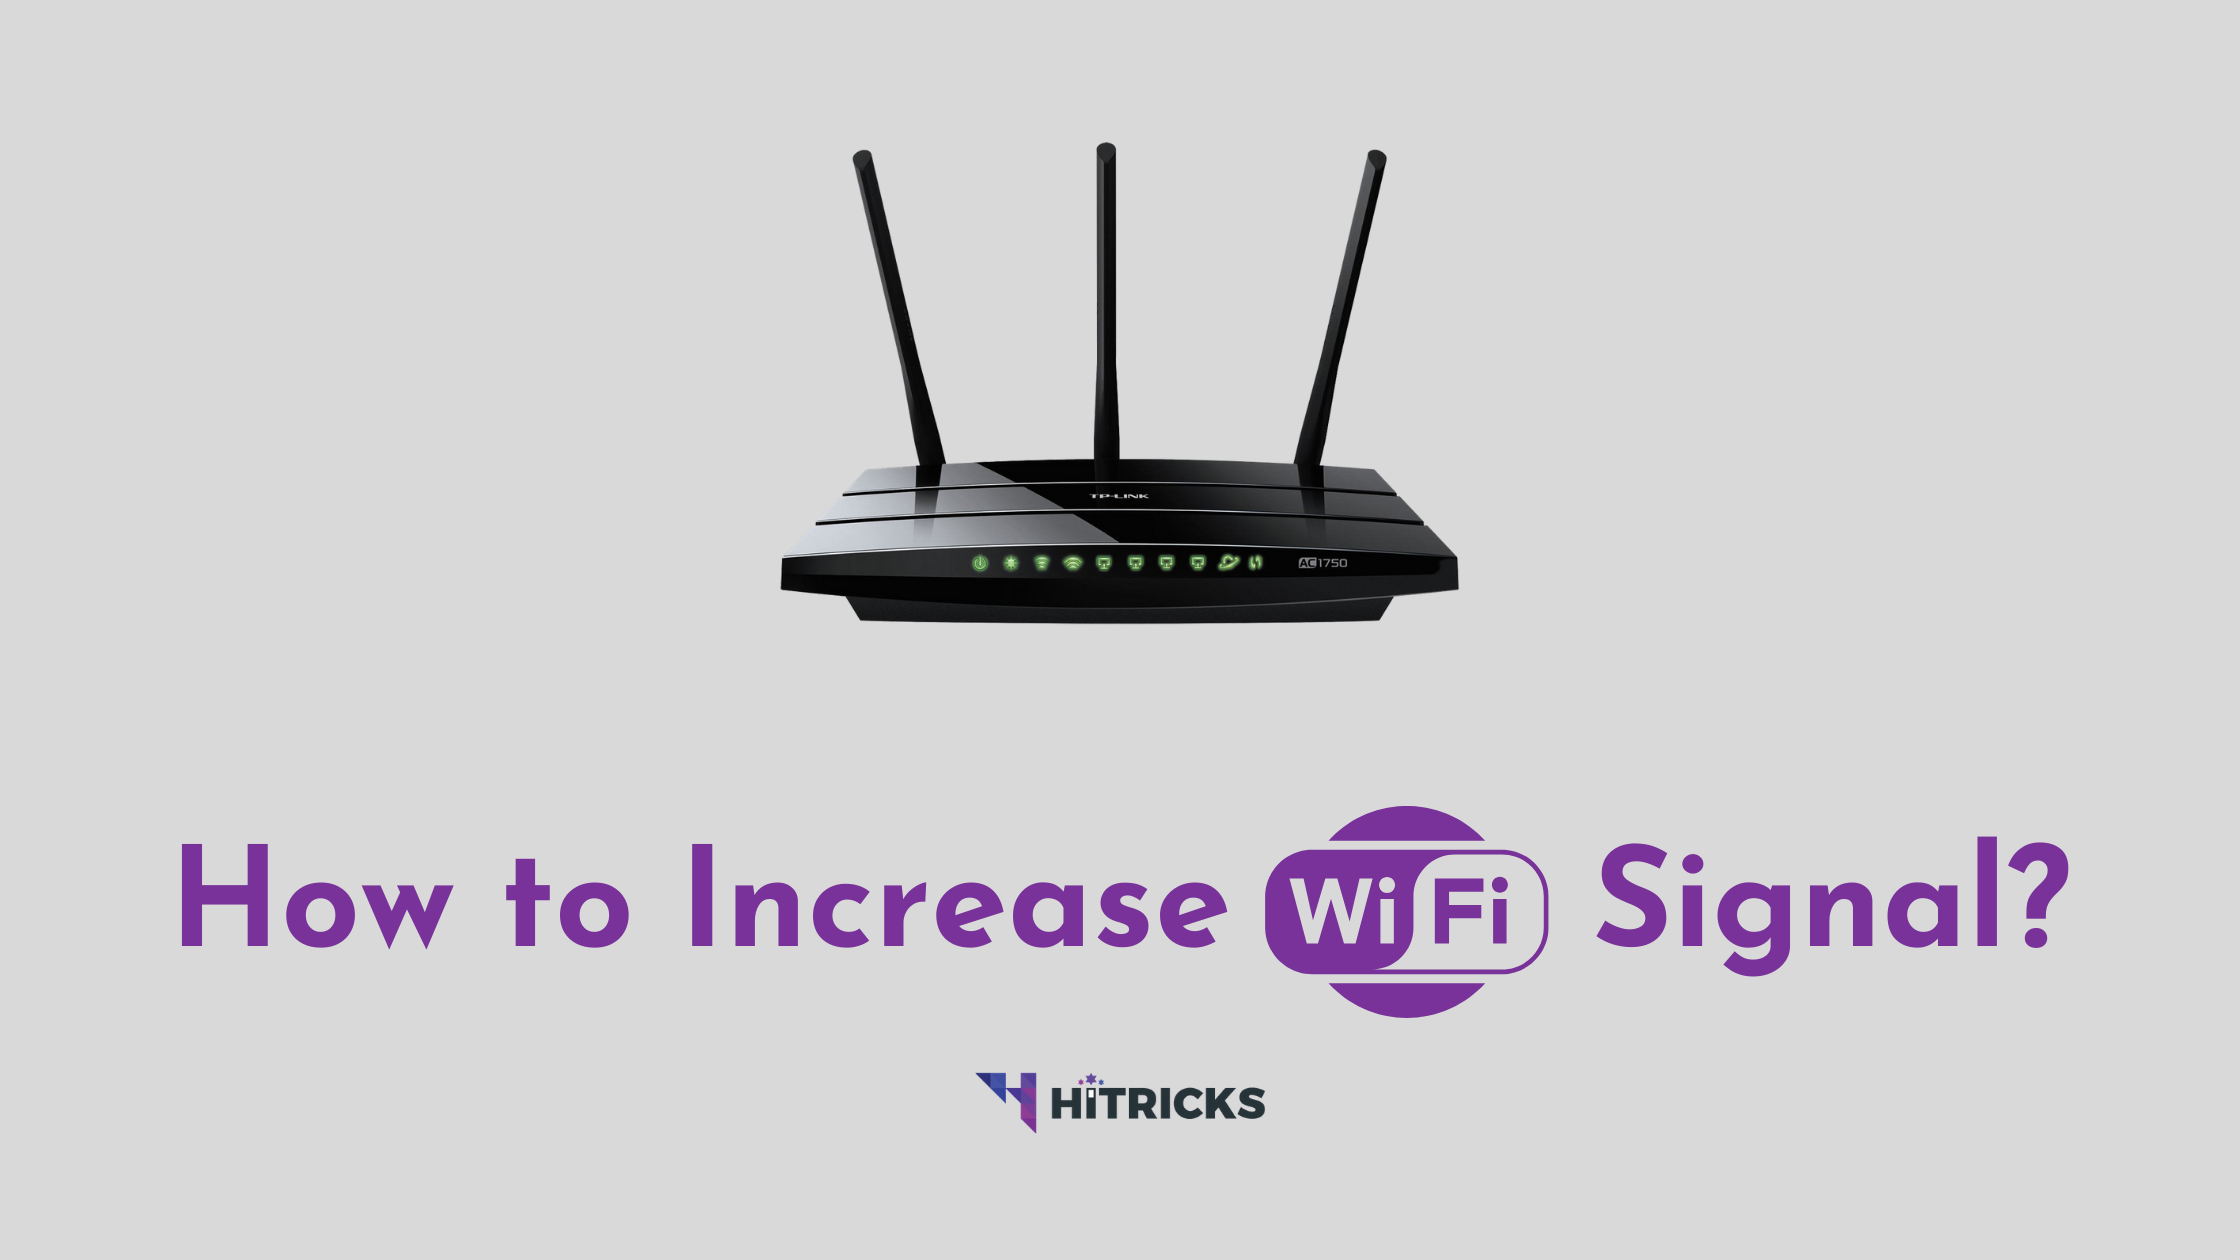 How to Increase WiFi Signal Strength?